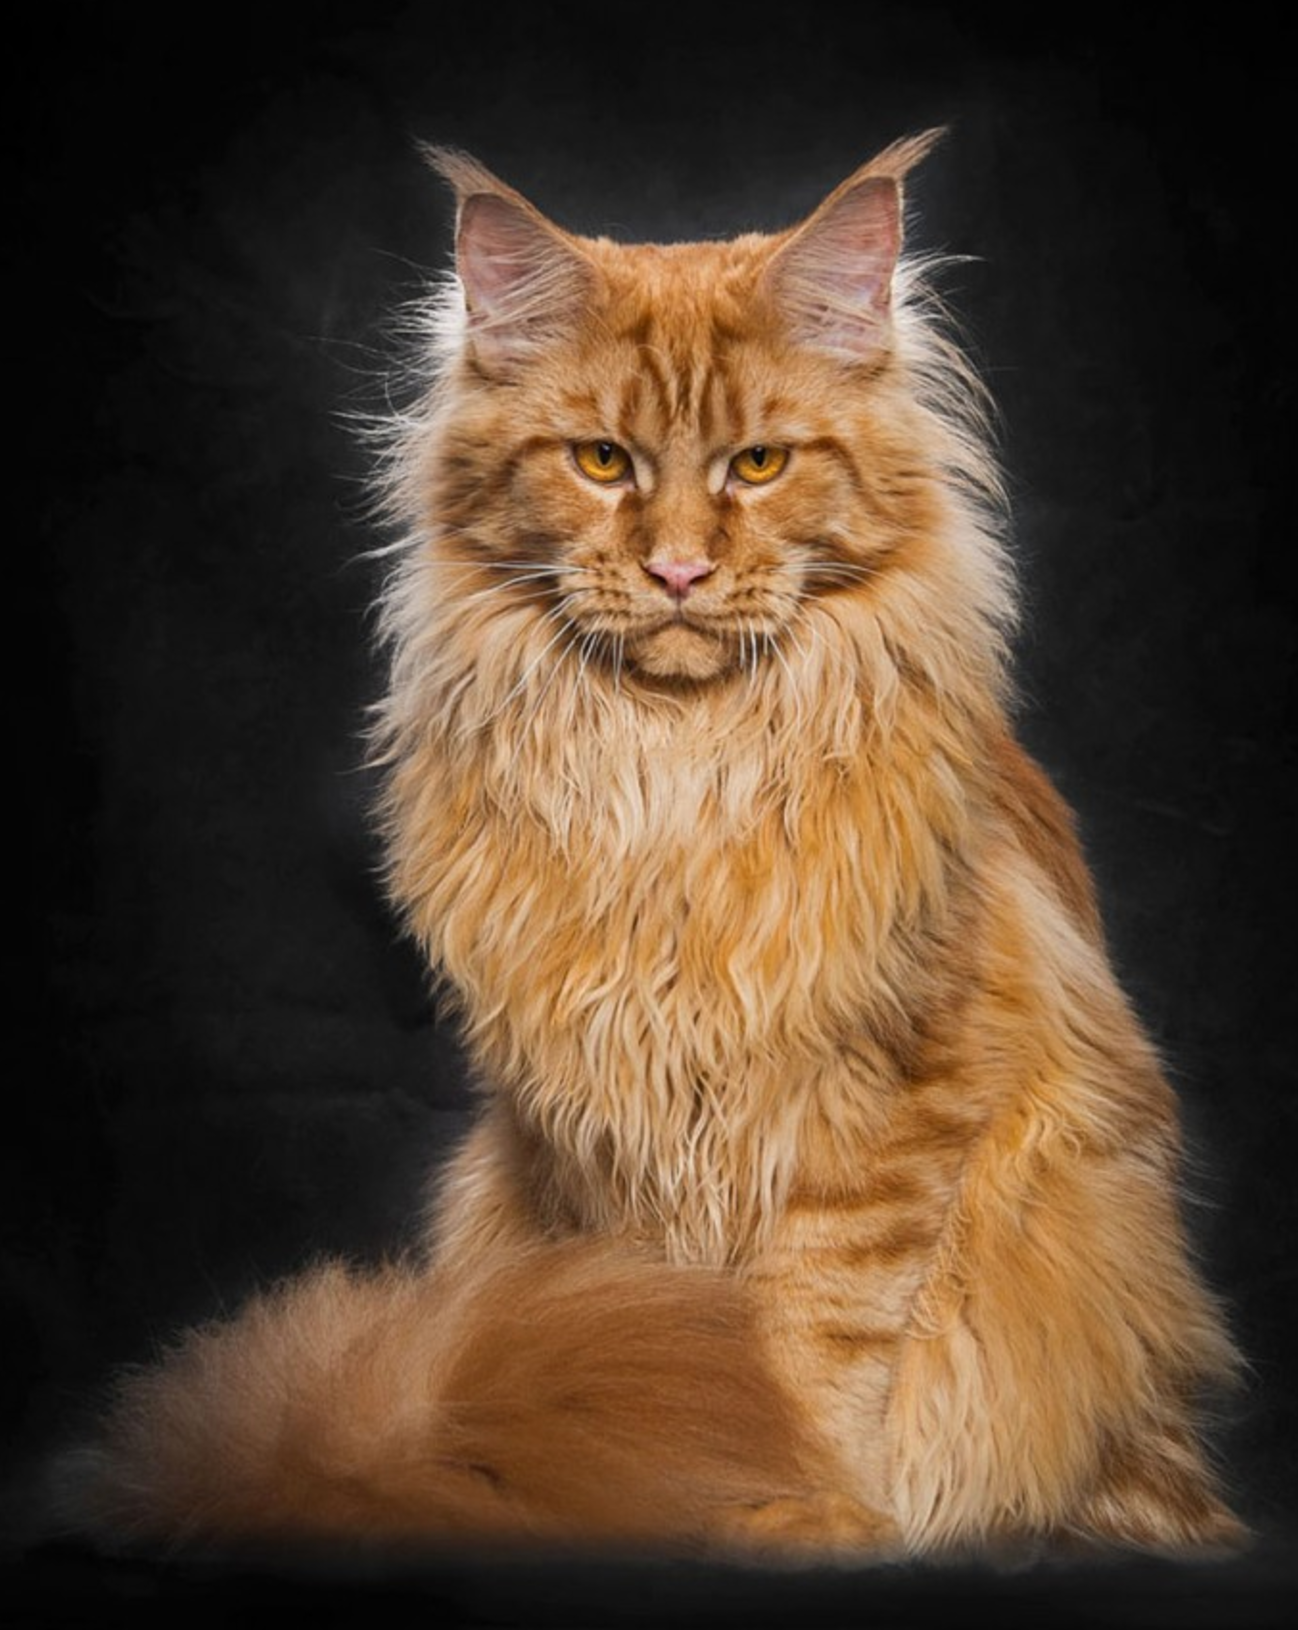 Maine Coon Photos - Fashion Designs